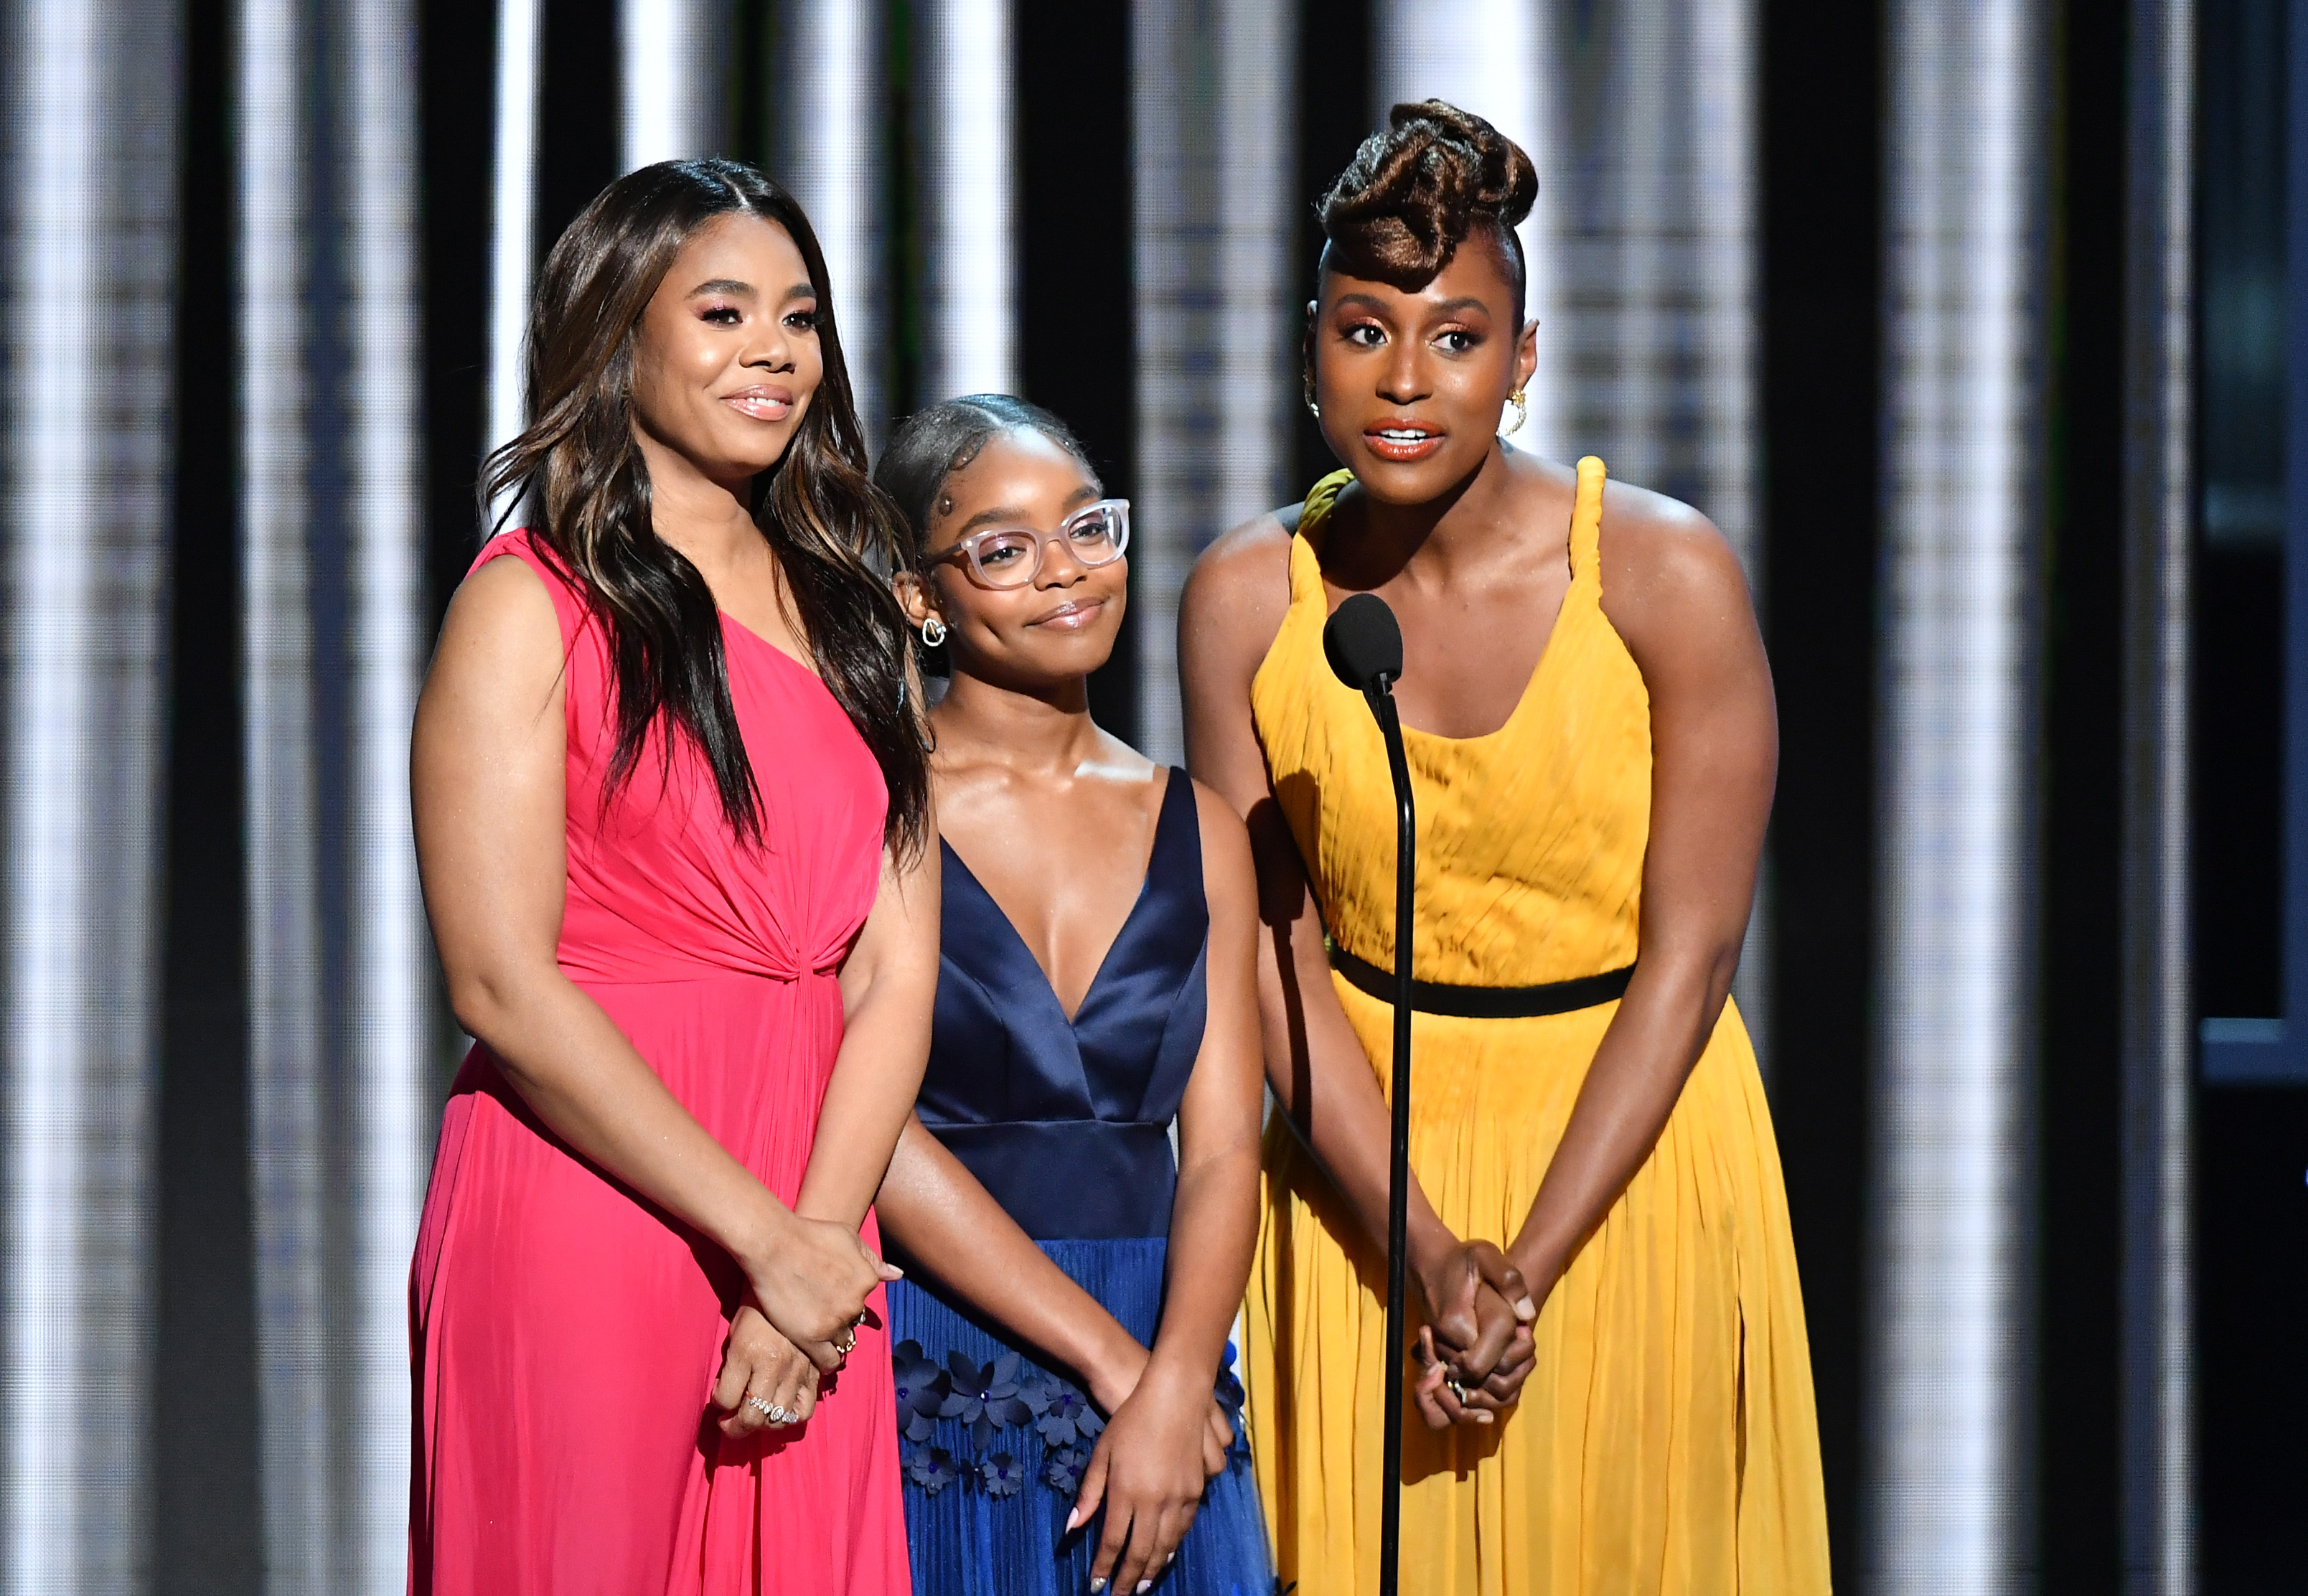 HOLLYWOOD, CALIFORNIA - MARCH 30: (L-R) Regina Hall, Marsai Martin, and Issa Rae speak onstage at the 50th NAACP Image Awards at Dolby Theatre on March 30, 2019 in Hollywood, California. (Photo by Earl Gibson III/Getty Images for NAACP)